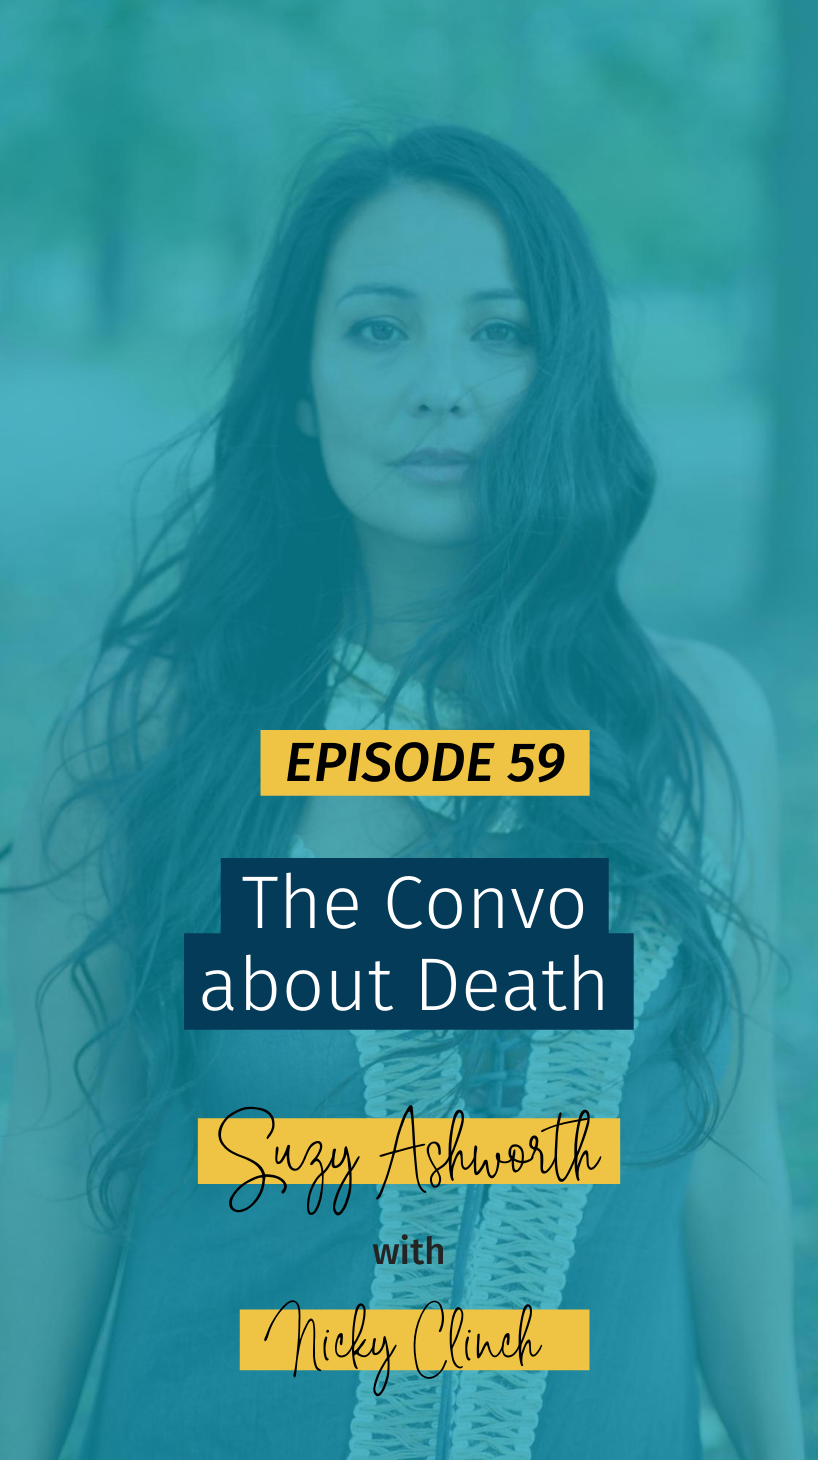 059 The Convo about Death with Nicky Clinch